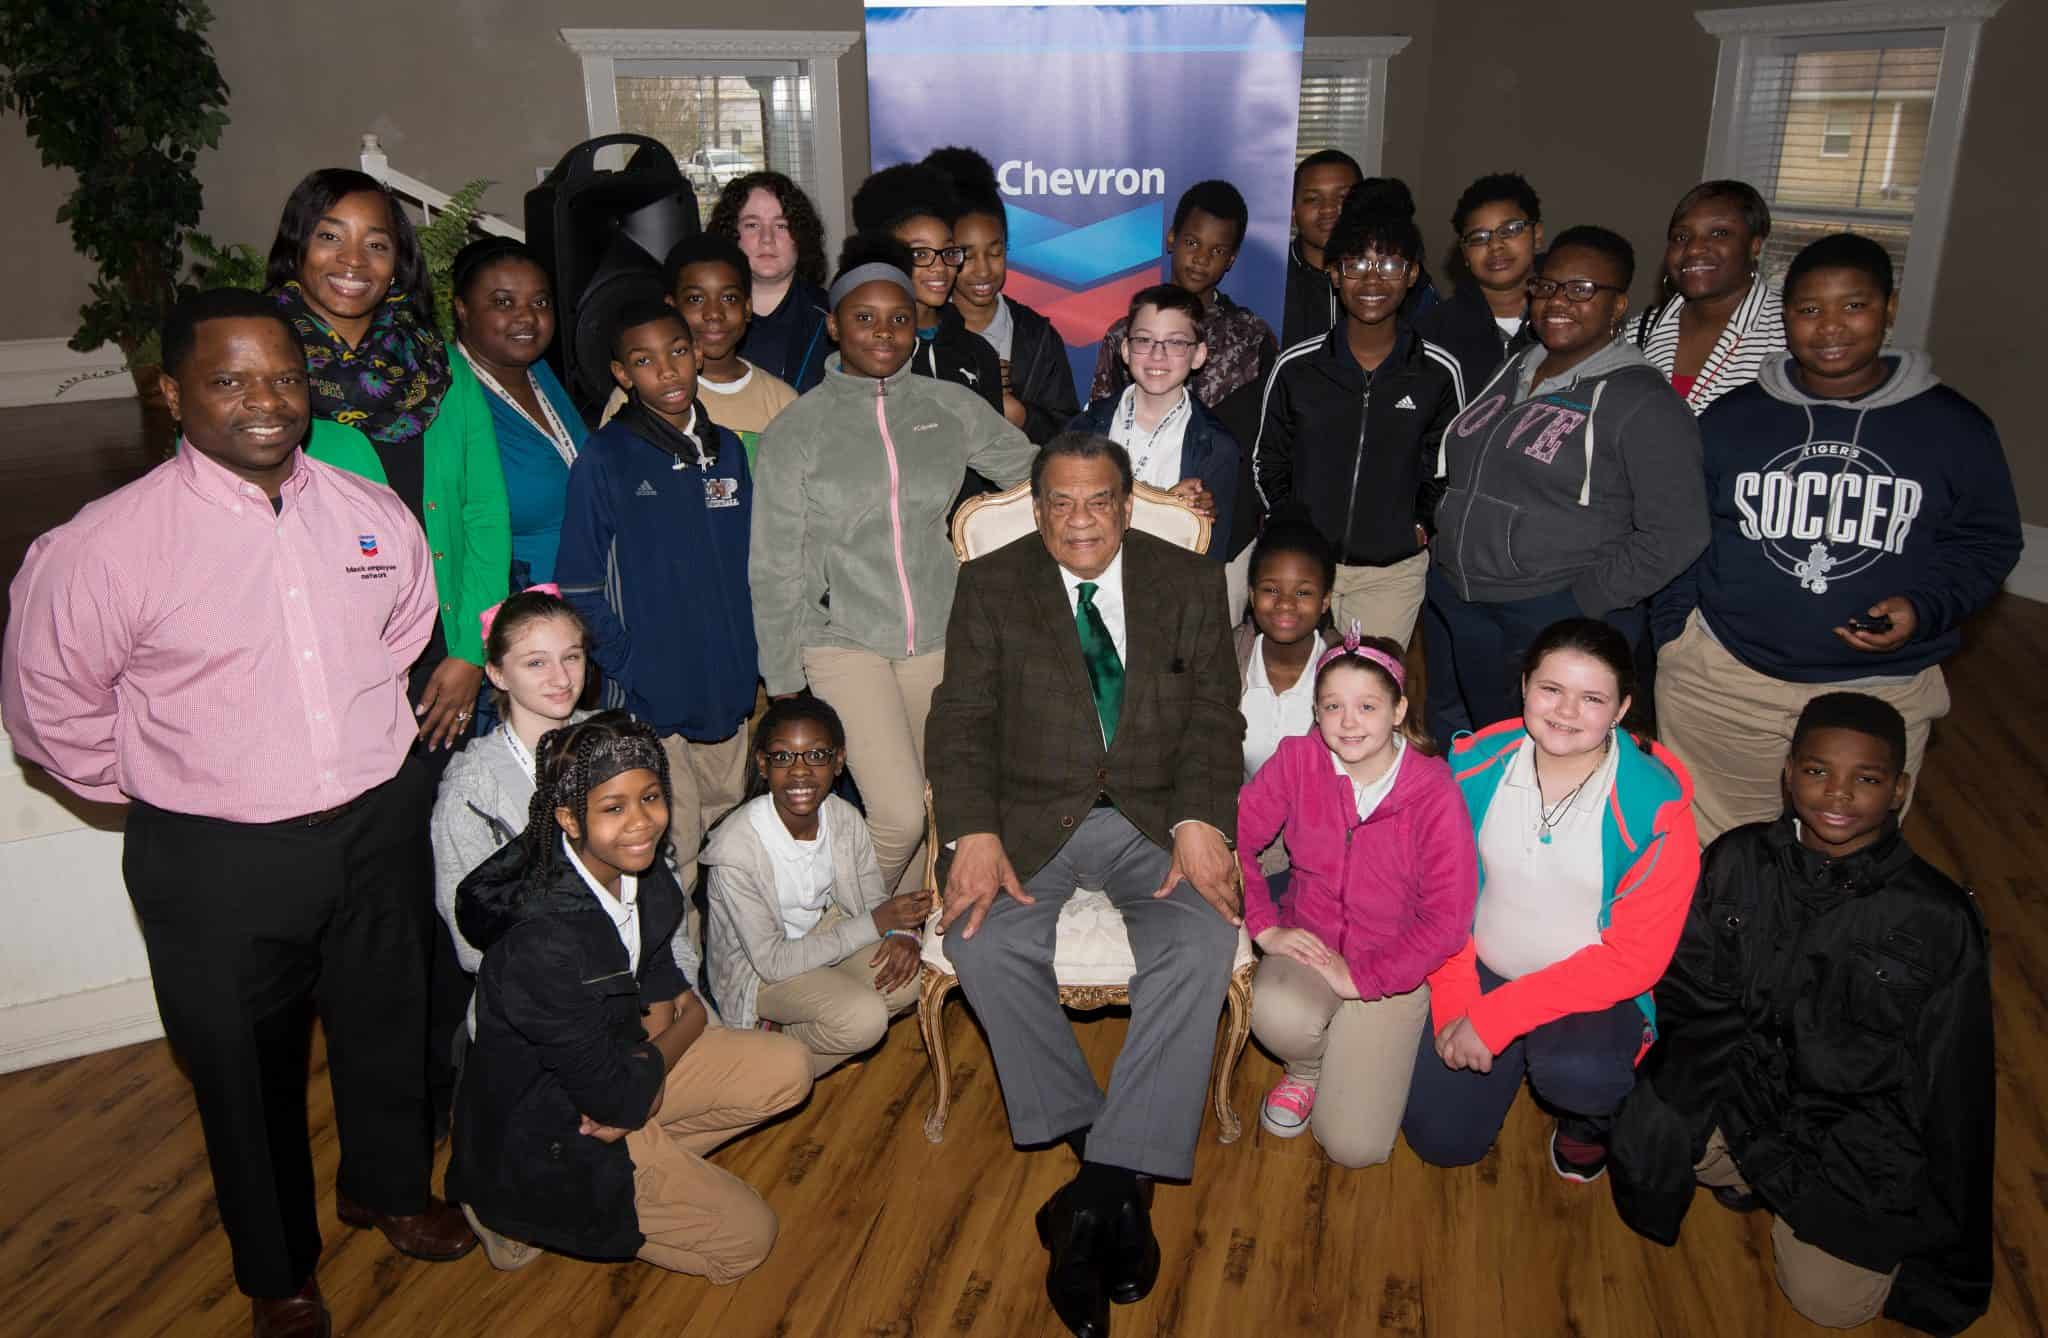 Civil-rights-leader-120-1-e1518442032859 Black History Month: NAACP Moss Point - Jackson County and Chevron hosted Honorable Andrew Young, U.N. Ambassador, Civil Rights Leader